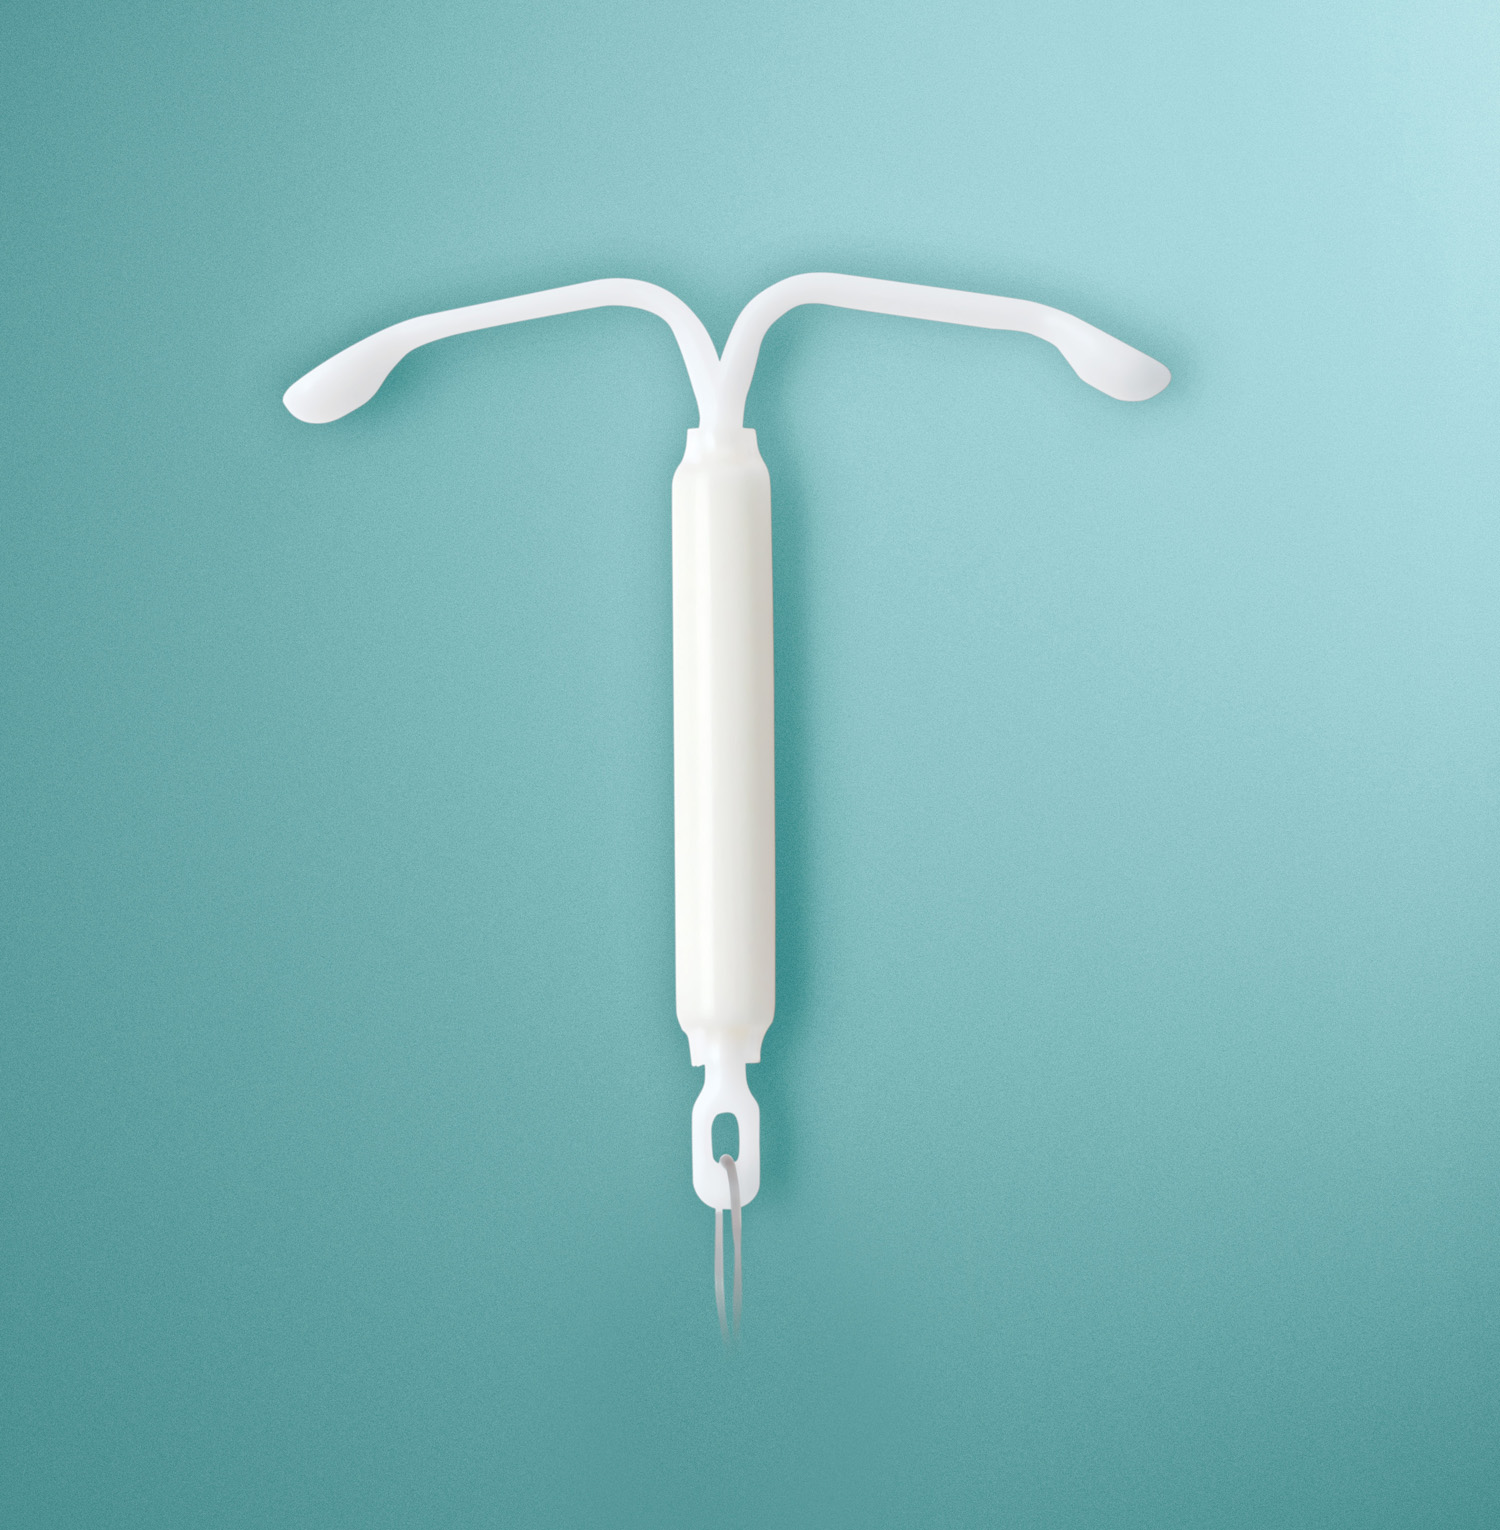 Screening For Bacterial Vaginosis Before And After Intrauterine Device Insertion